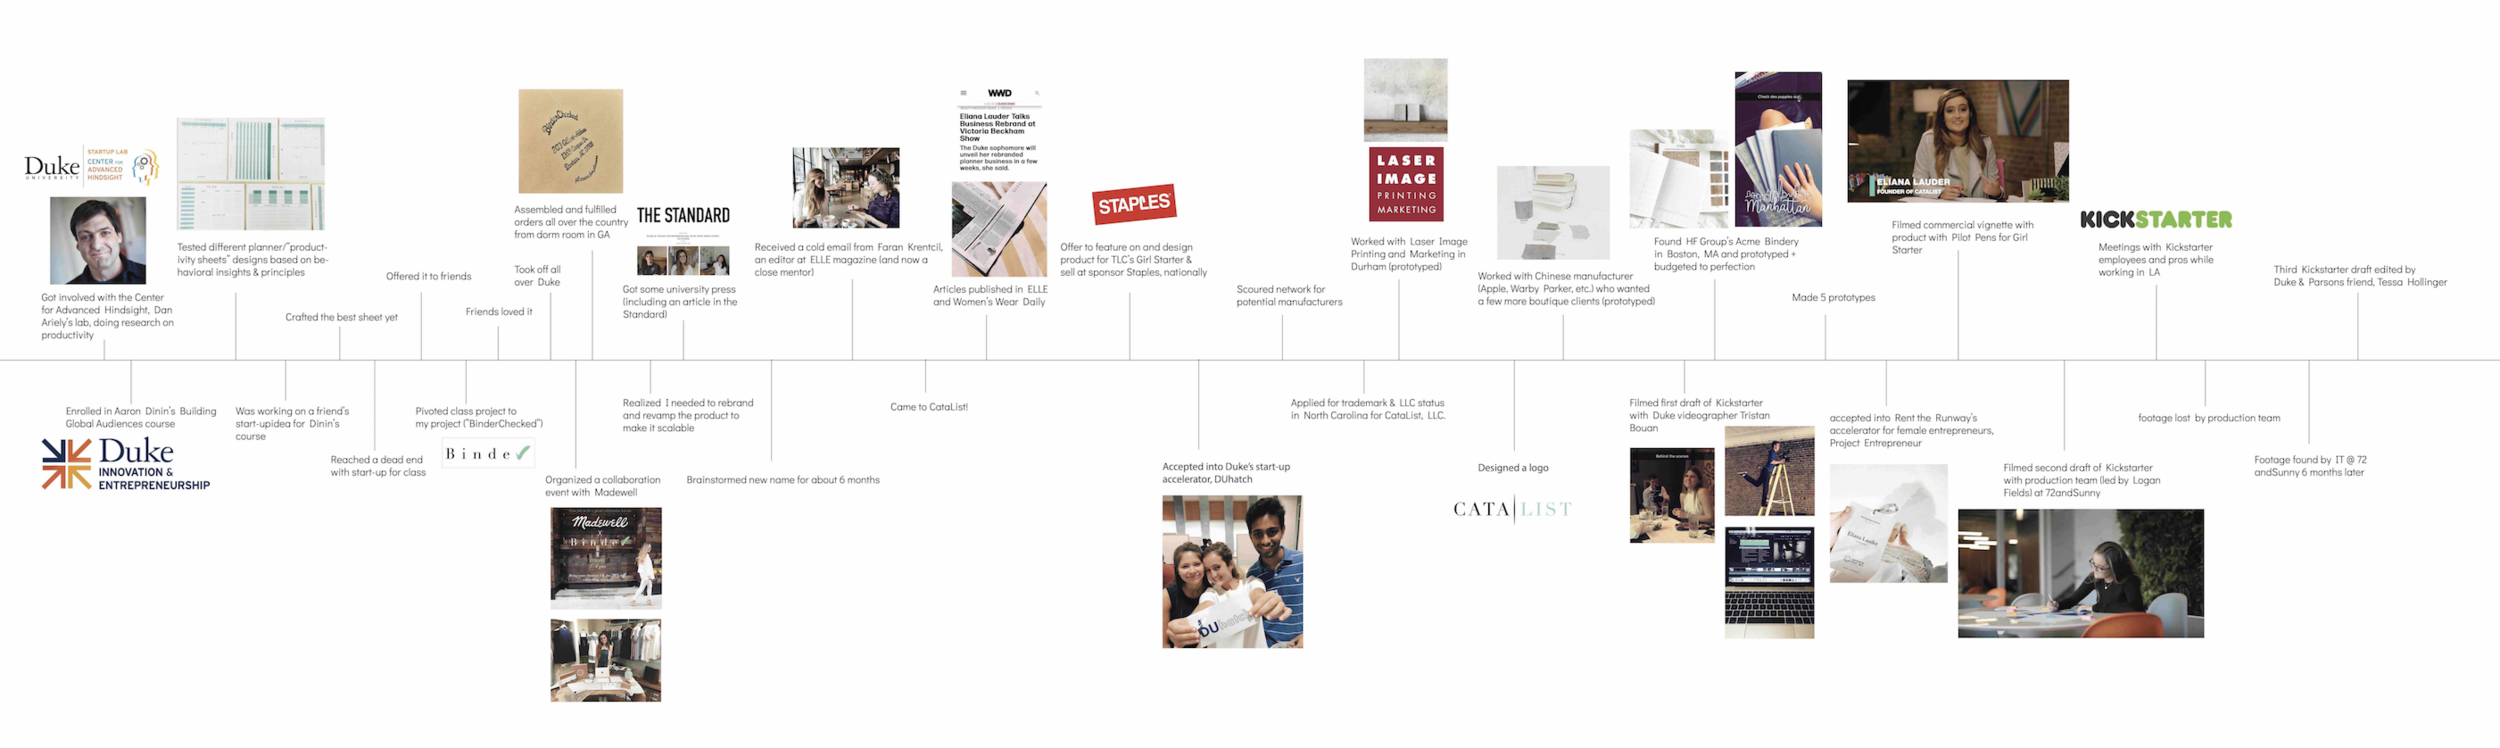 The timeline and progress of CataList as a company